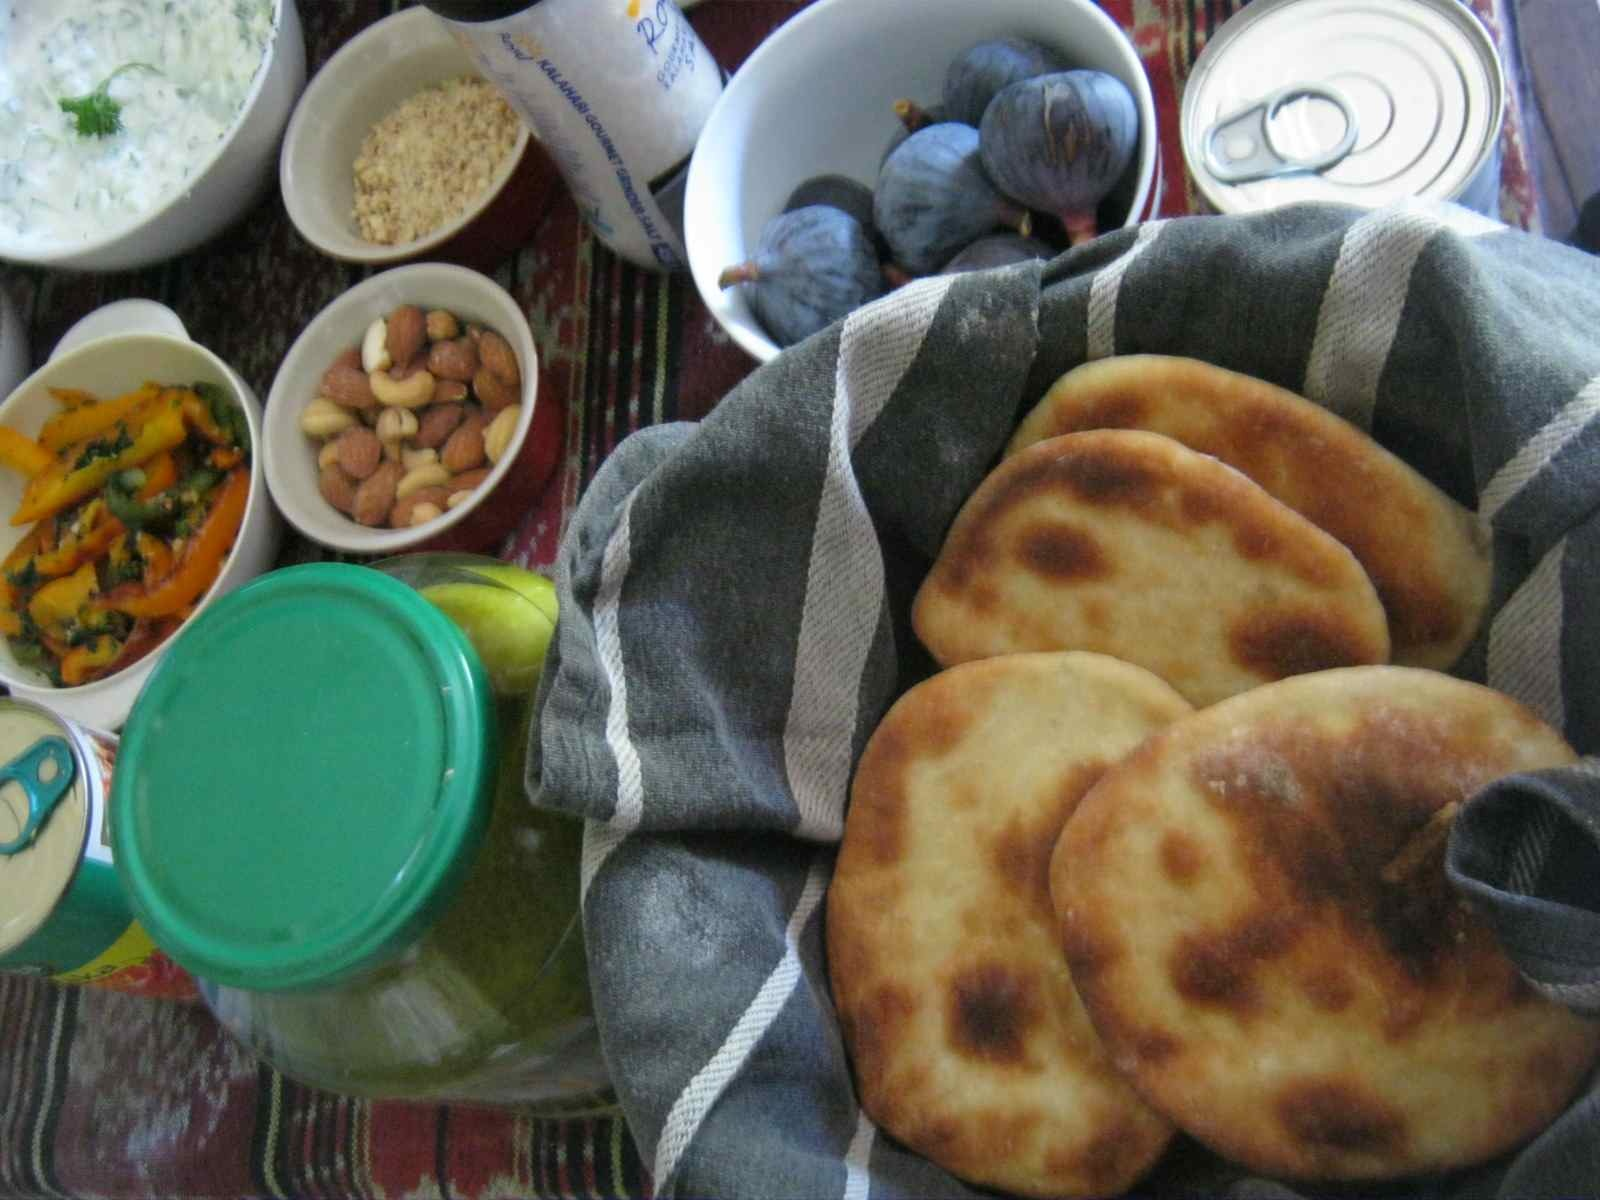 Fresh mini pita breads with condiments on a picnic blanket.